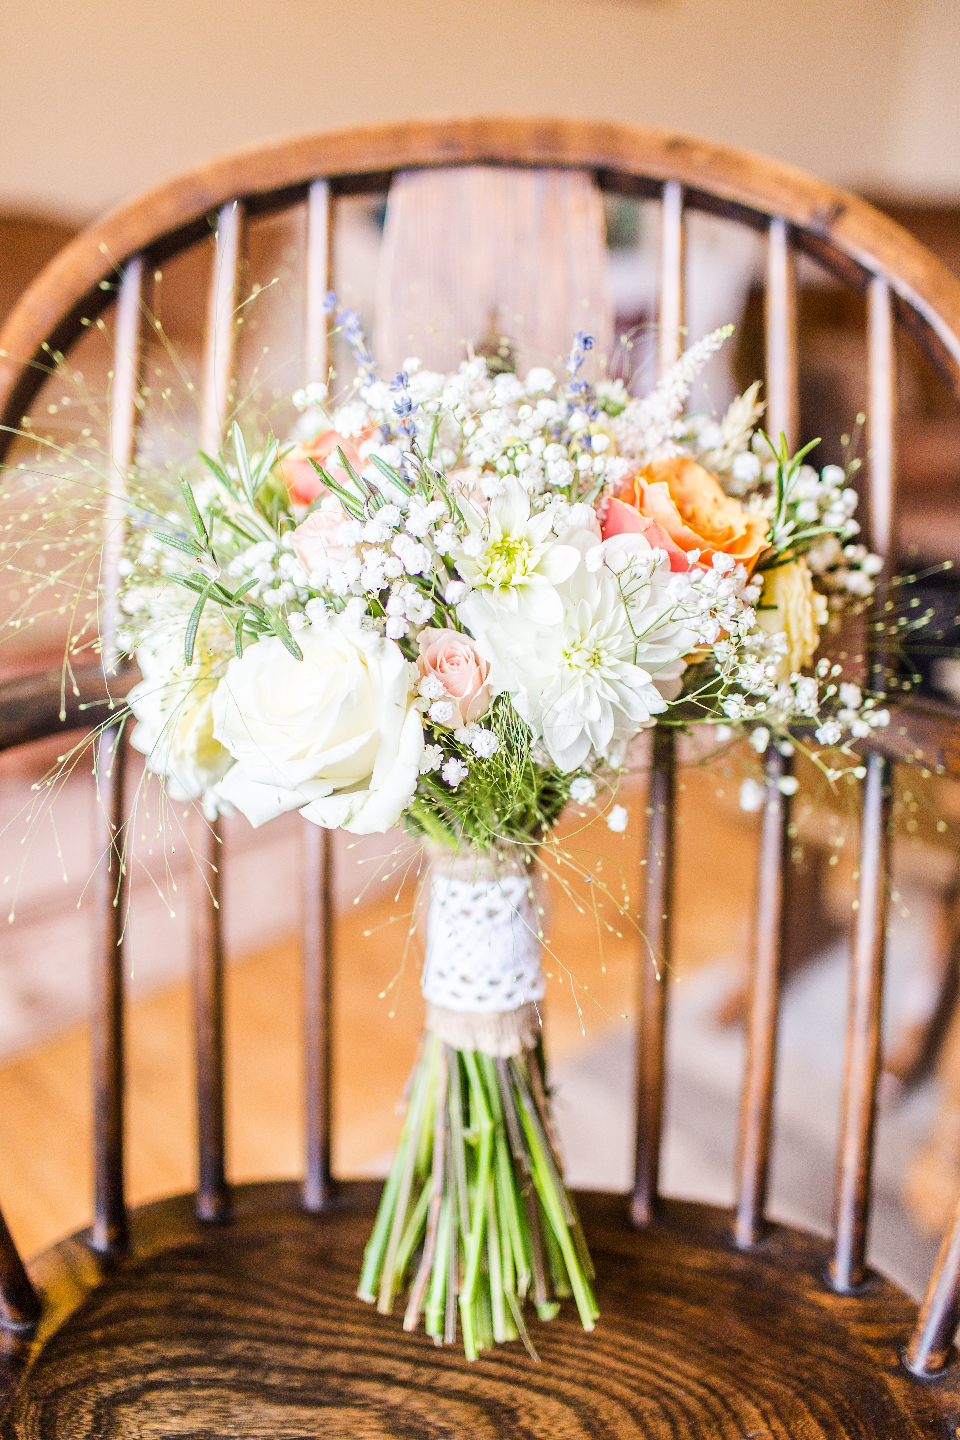 Free stock photo of wedding flowers bouquet